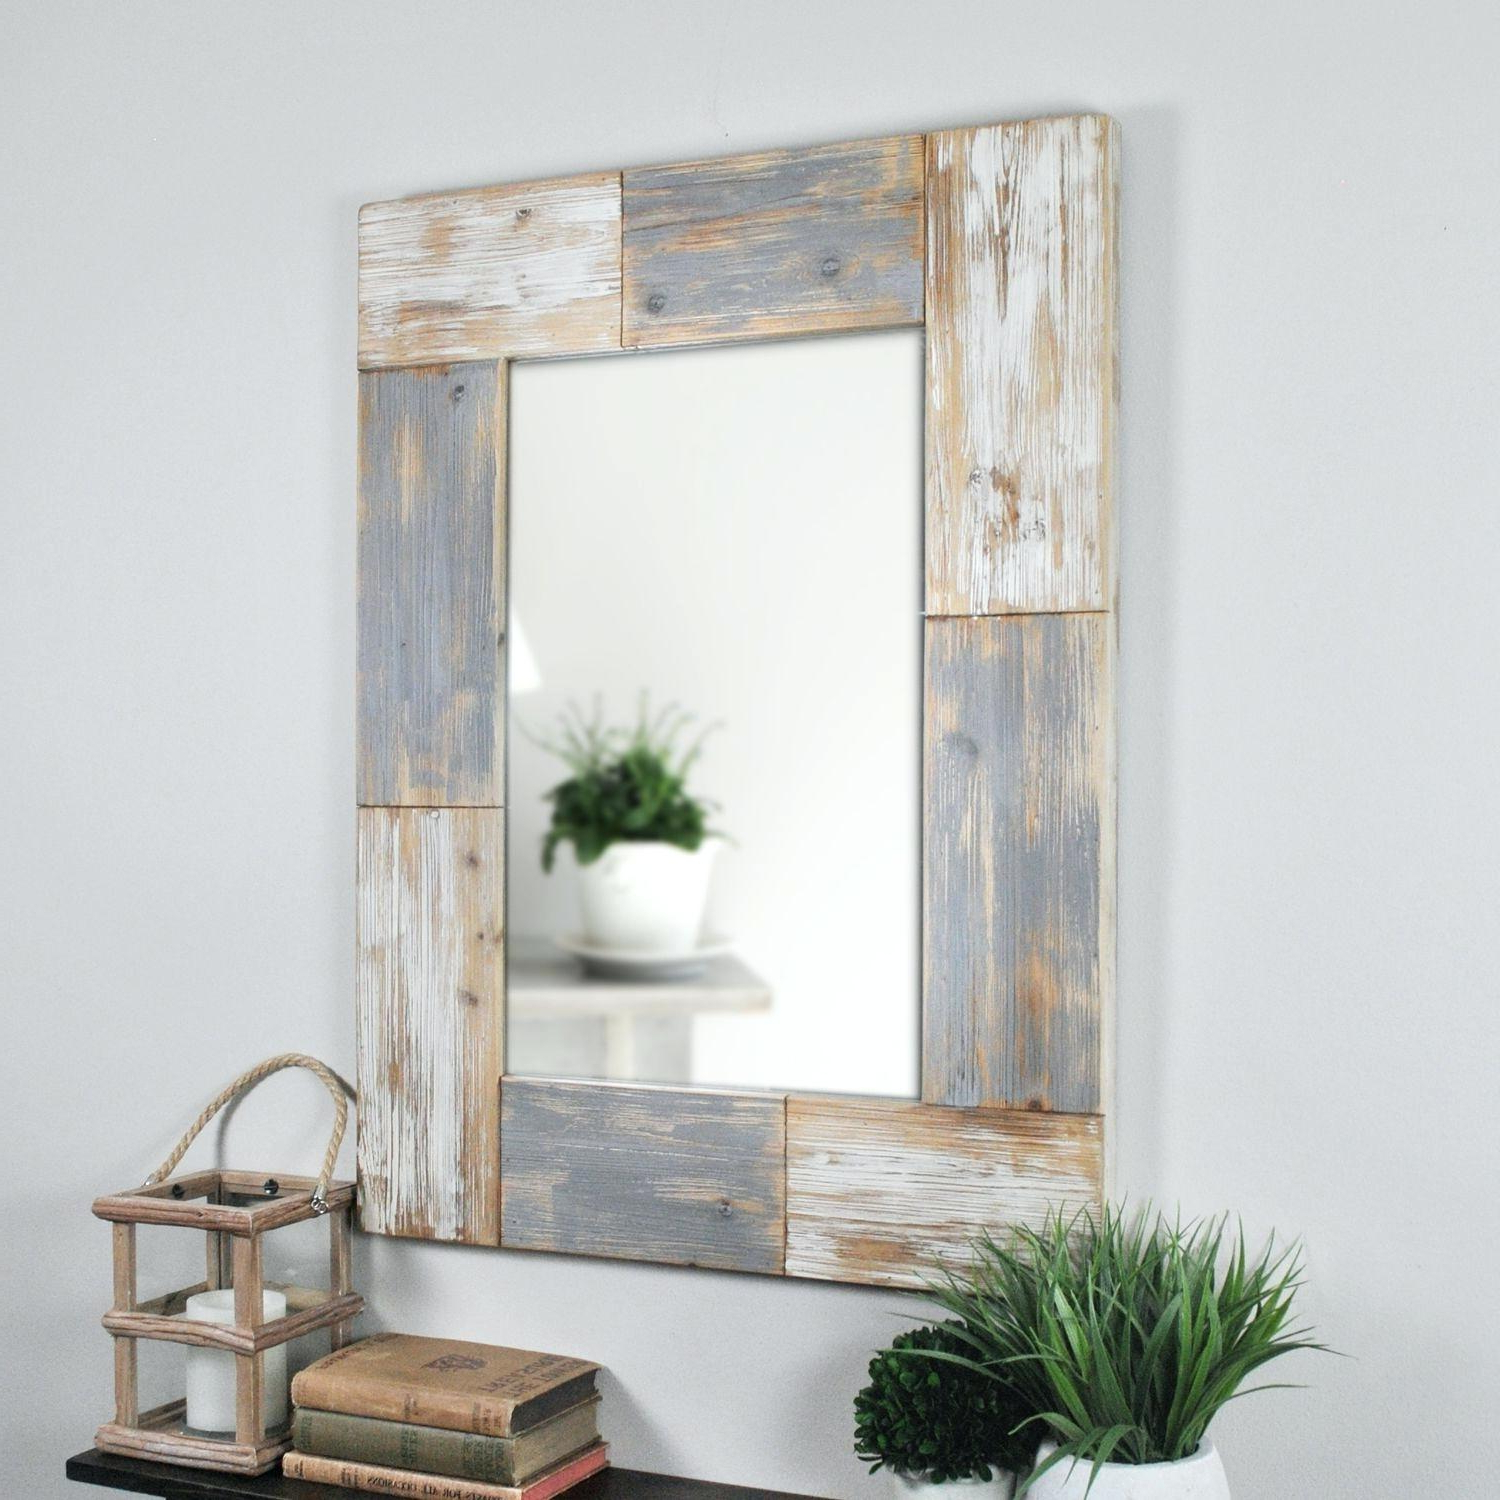 Rustic Gray Wall Mirror Mason Planks Aged White Pier 1 A Leftward Within Most Popular Pier One Wall Mirrors (View 16 of 20)